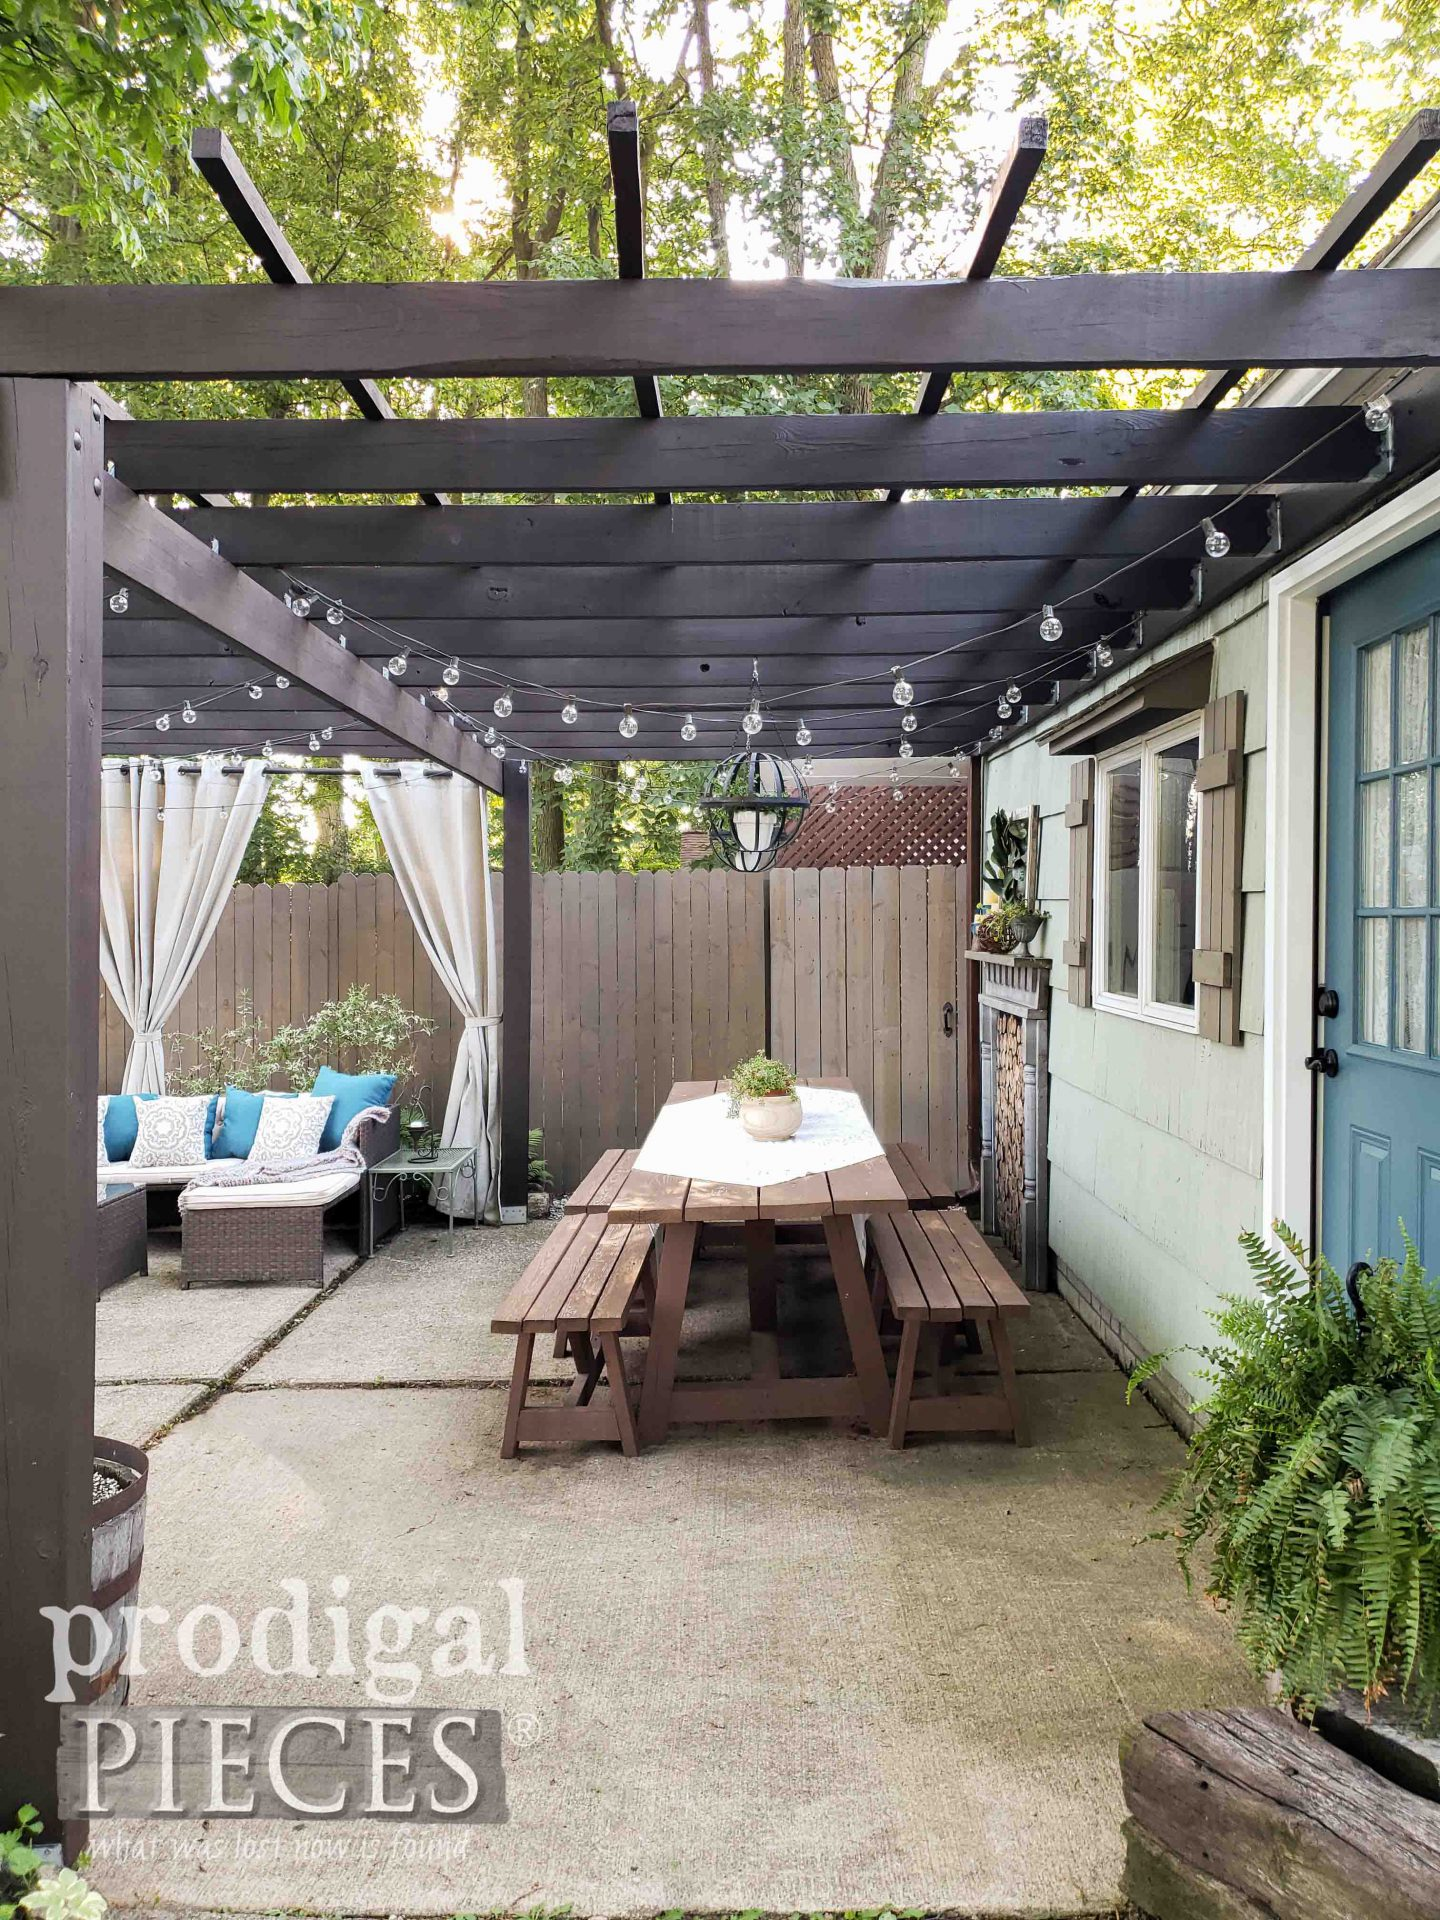 DIY Patio Dining Table by Prodigal Pieces | prodigalpieces.com #prodigalpieces #diy #home #homedecor #patio #outdoor